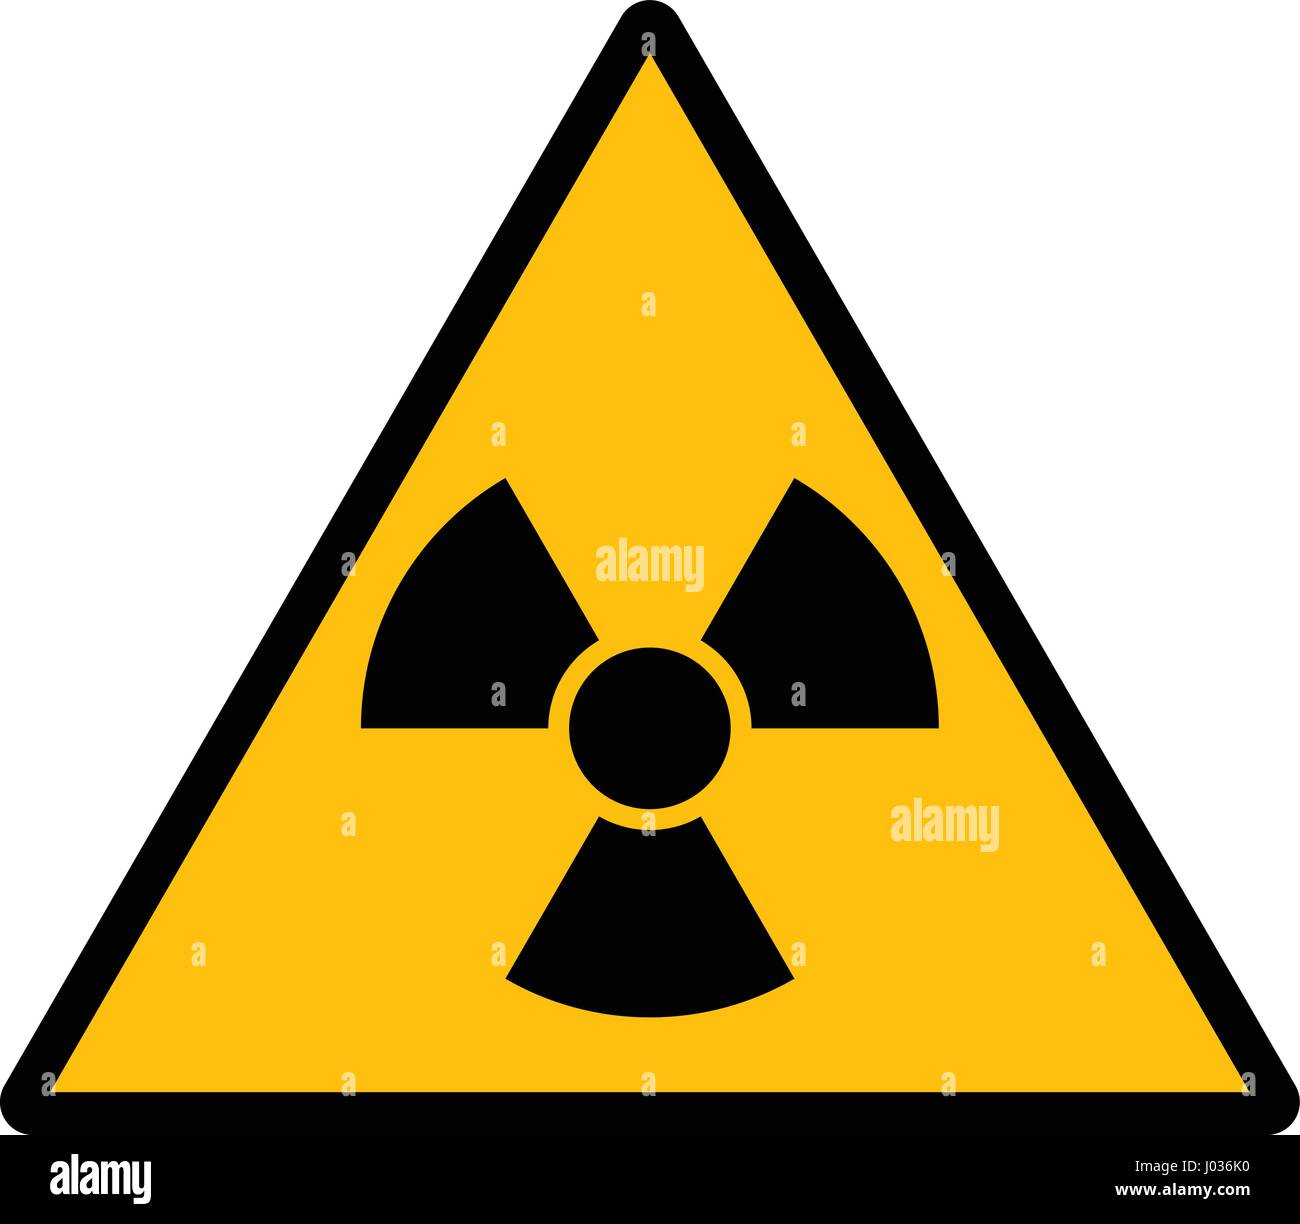 The radiation sign vector design isolated on white background - Stock Image